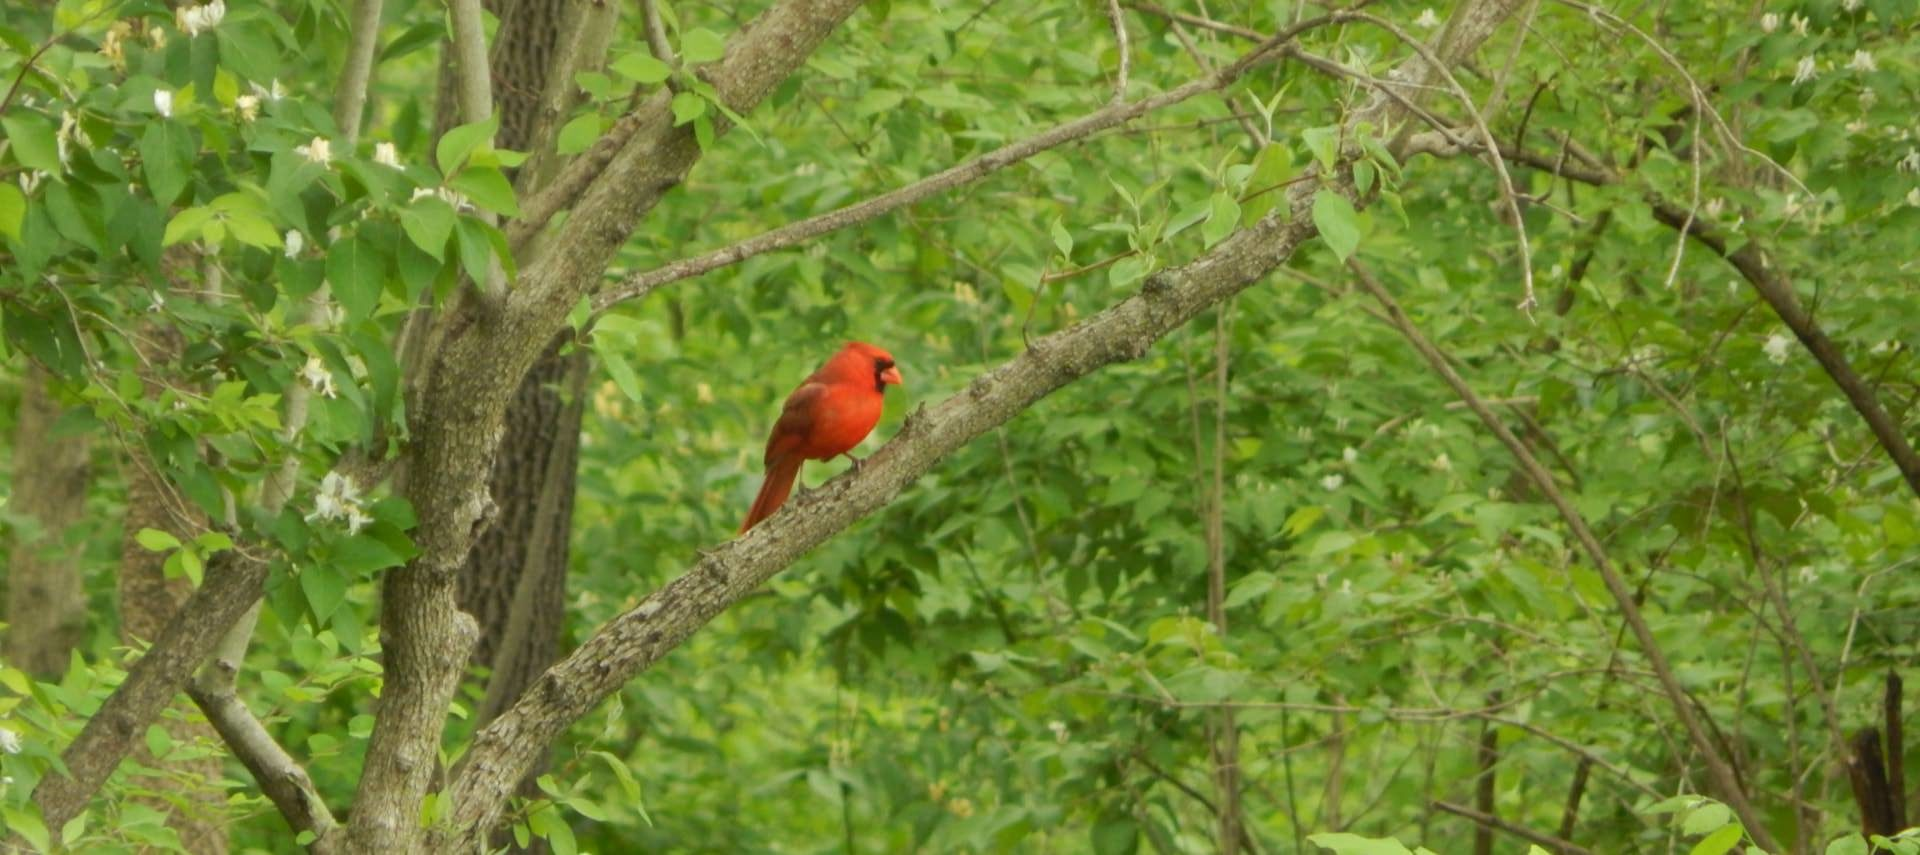 Bright red bird standing on tree branch with greenery in background